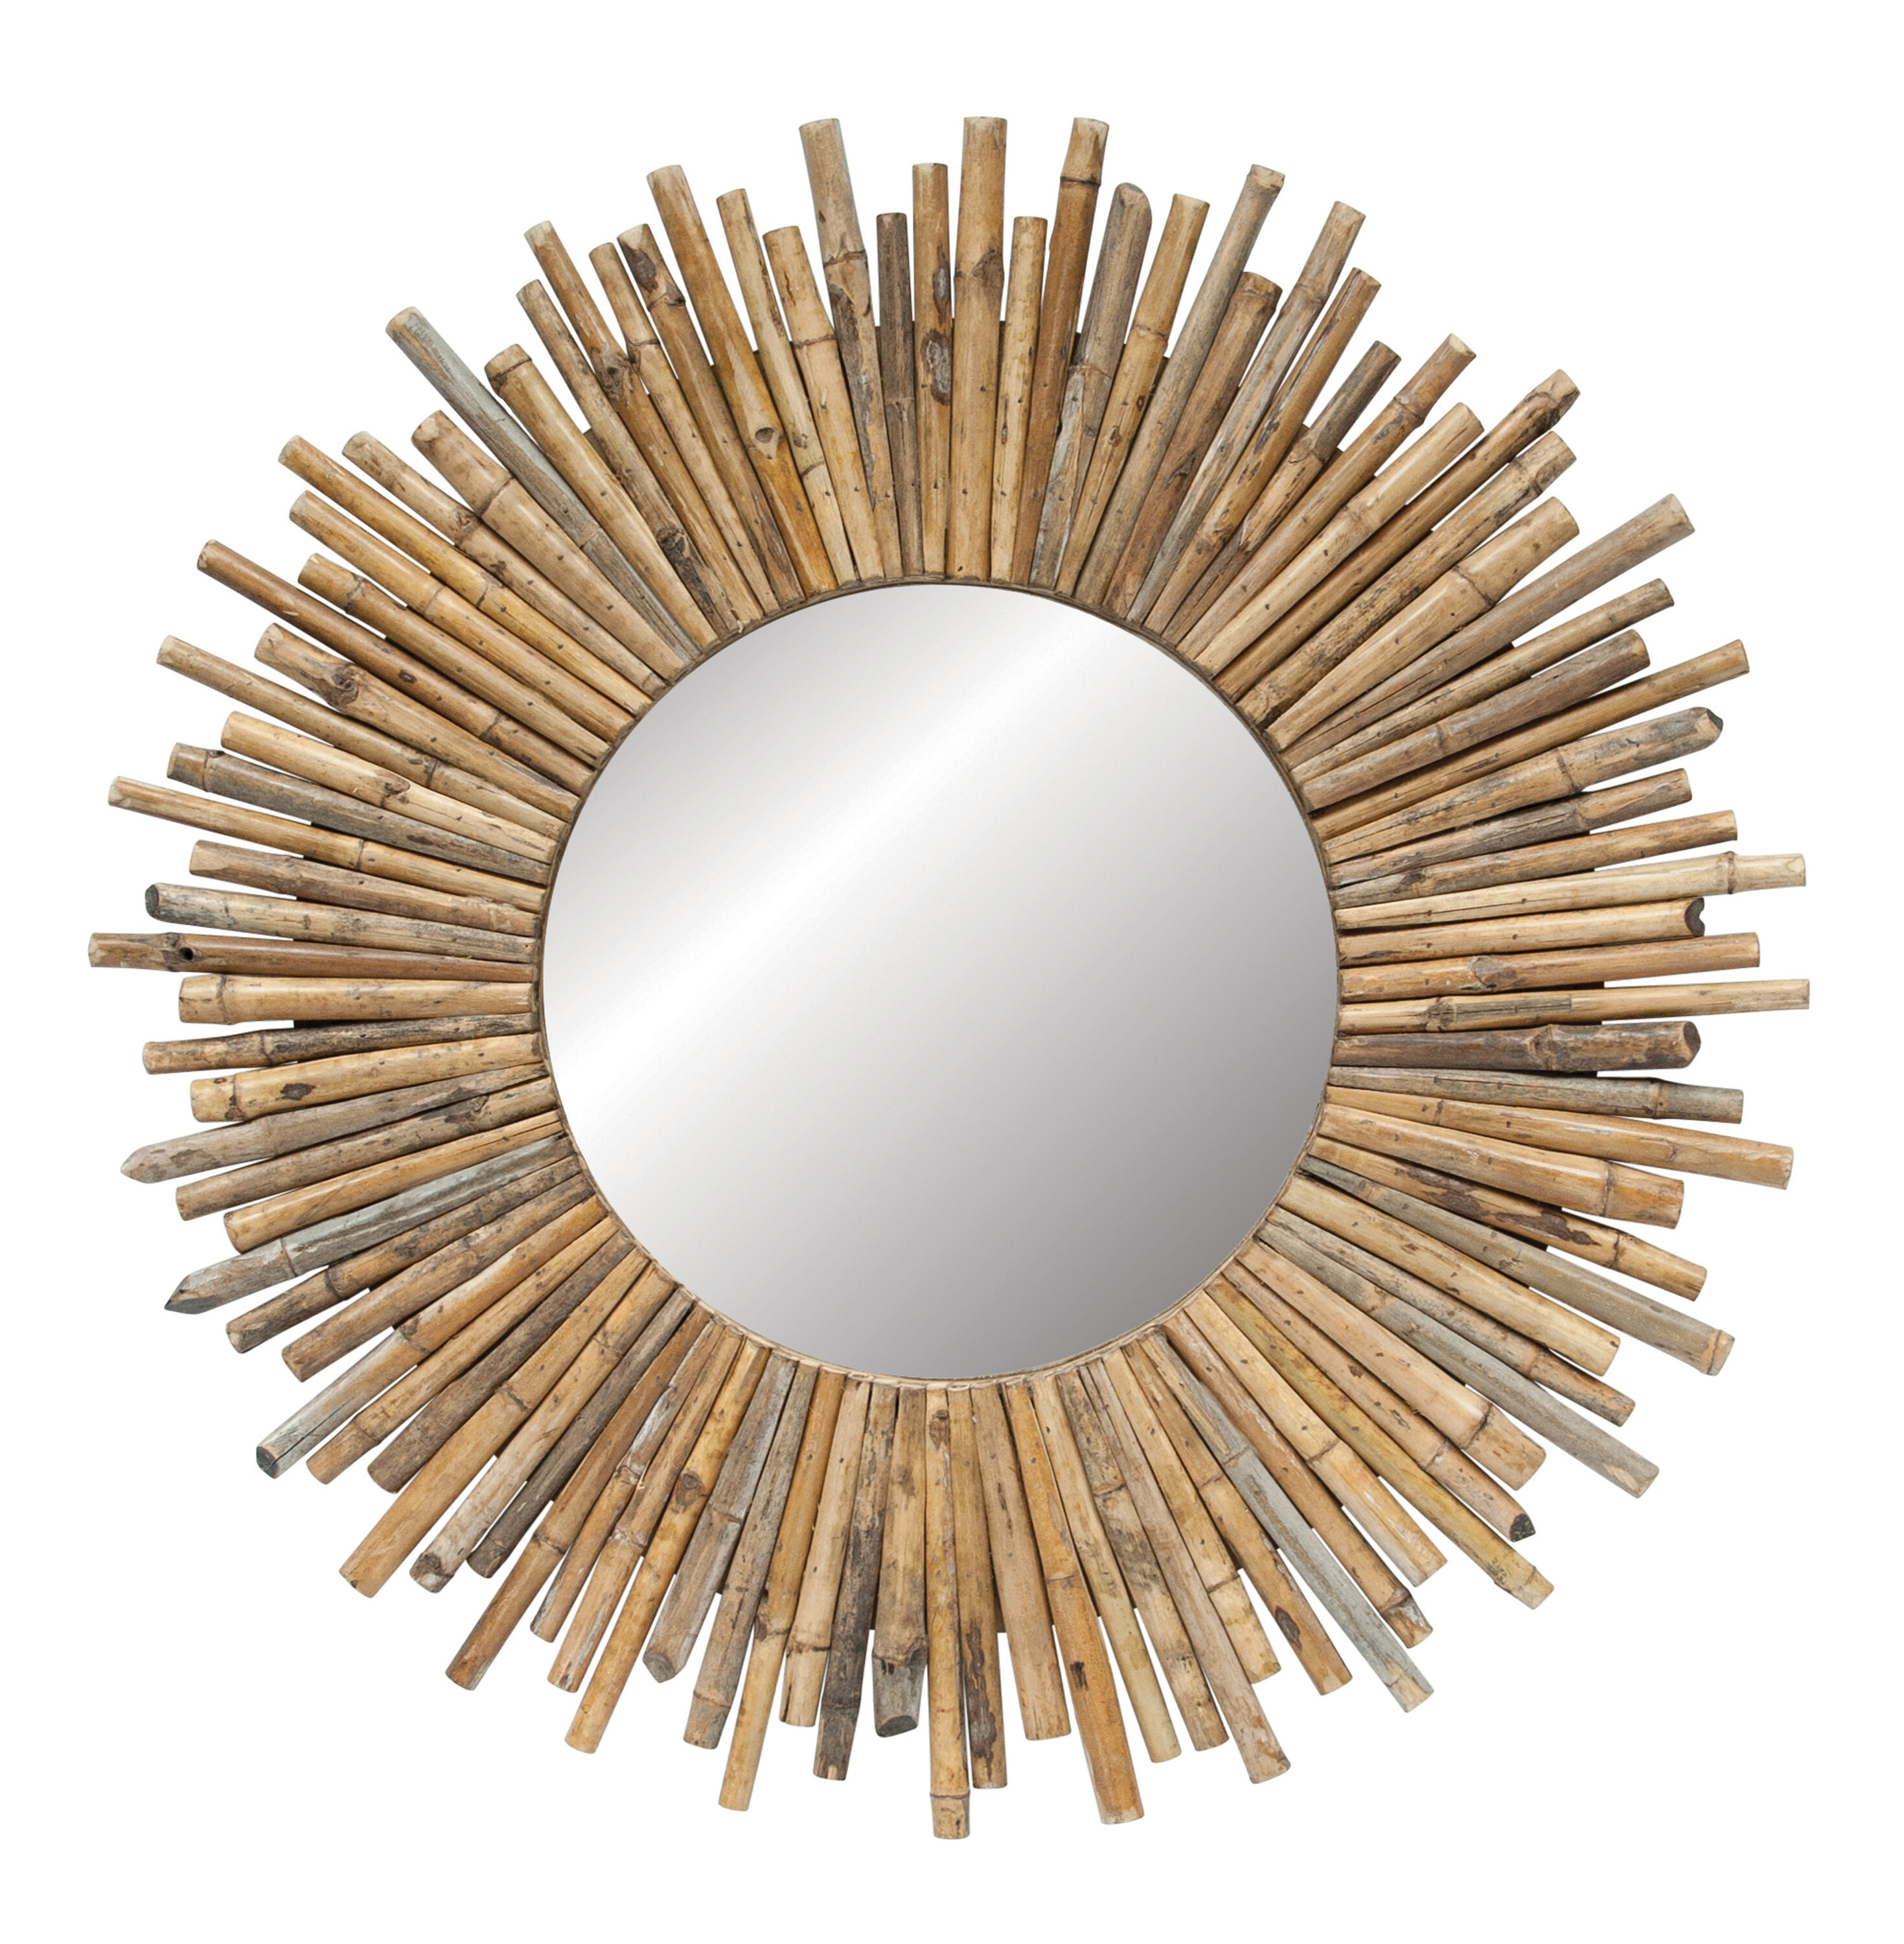 Madilynn Eclectic Accent Mirror | Joss & Main Inside Perillo Burst Wood Accent Mirrors (Image 13 of 20)